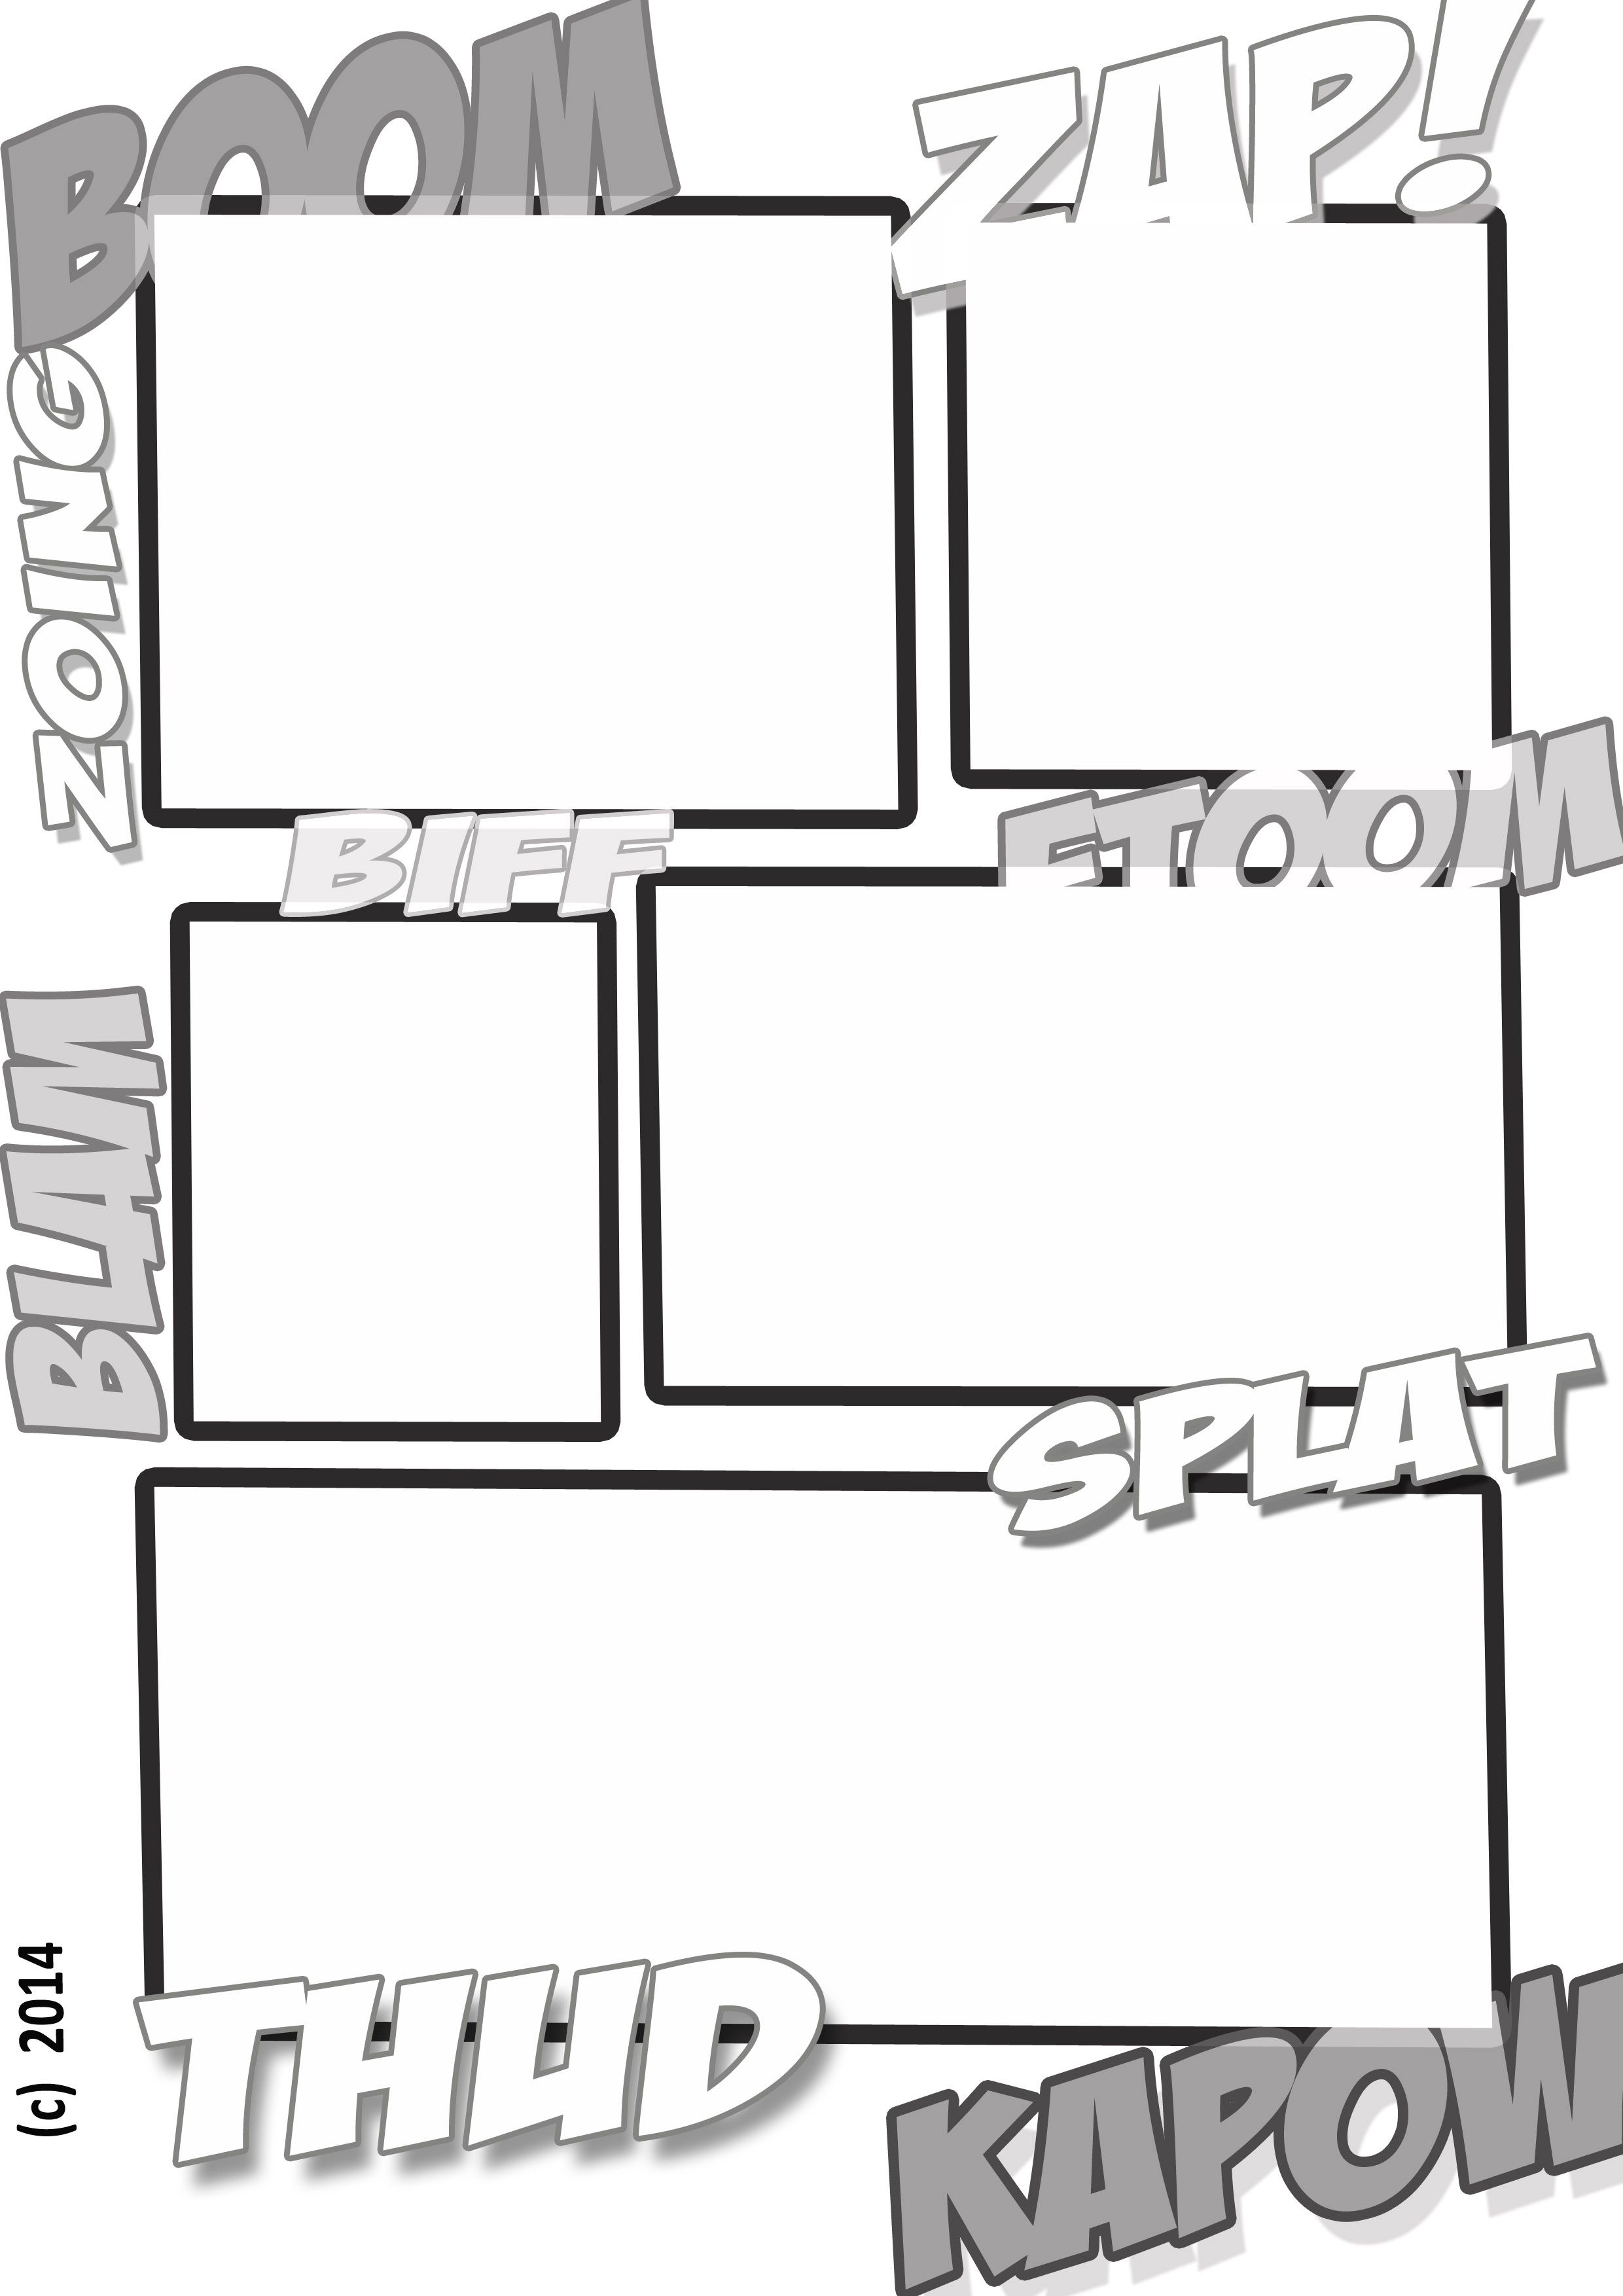 A Fun Comic Book Style Template For Kids To Create Their